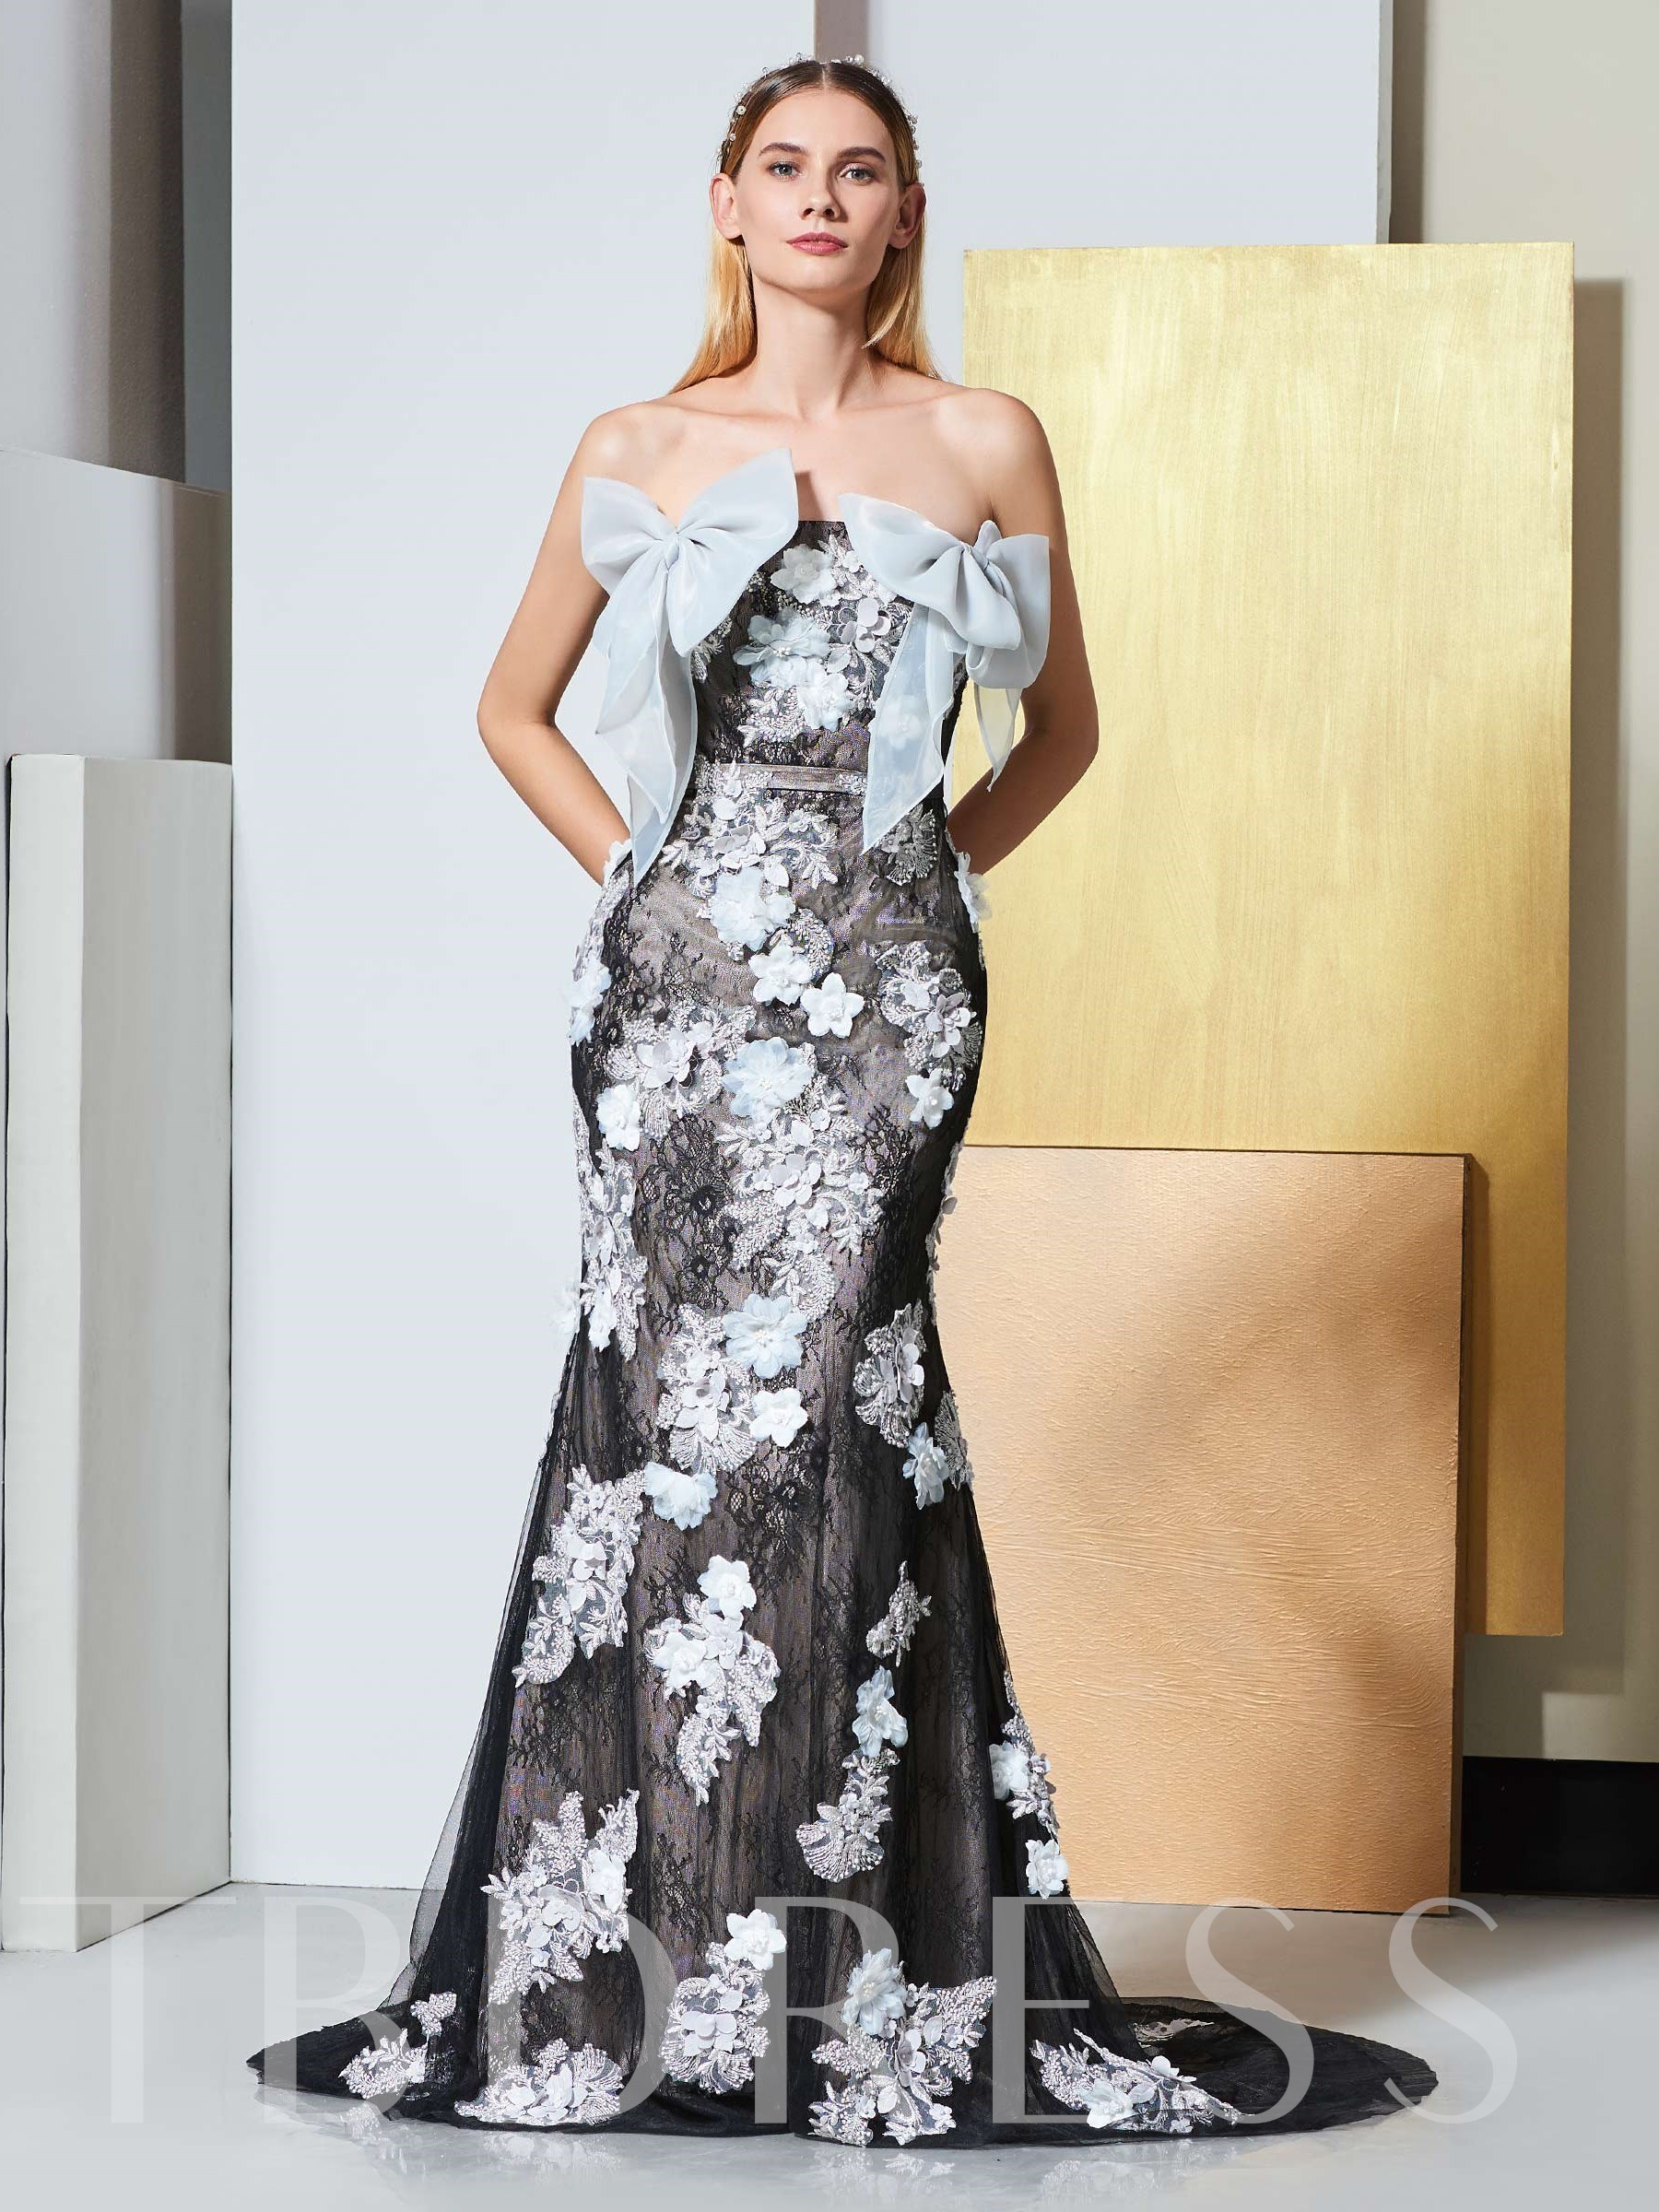 Buy Appliques Bowknot Strapless Mermaid Lace Evening Dress, Spring,Summer,Fall,Winter, 13325026 for $171.98 in TBDress store